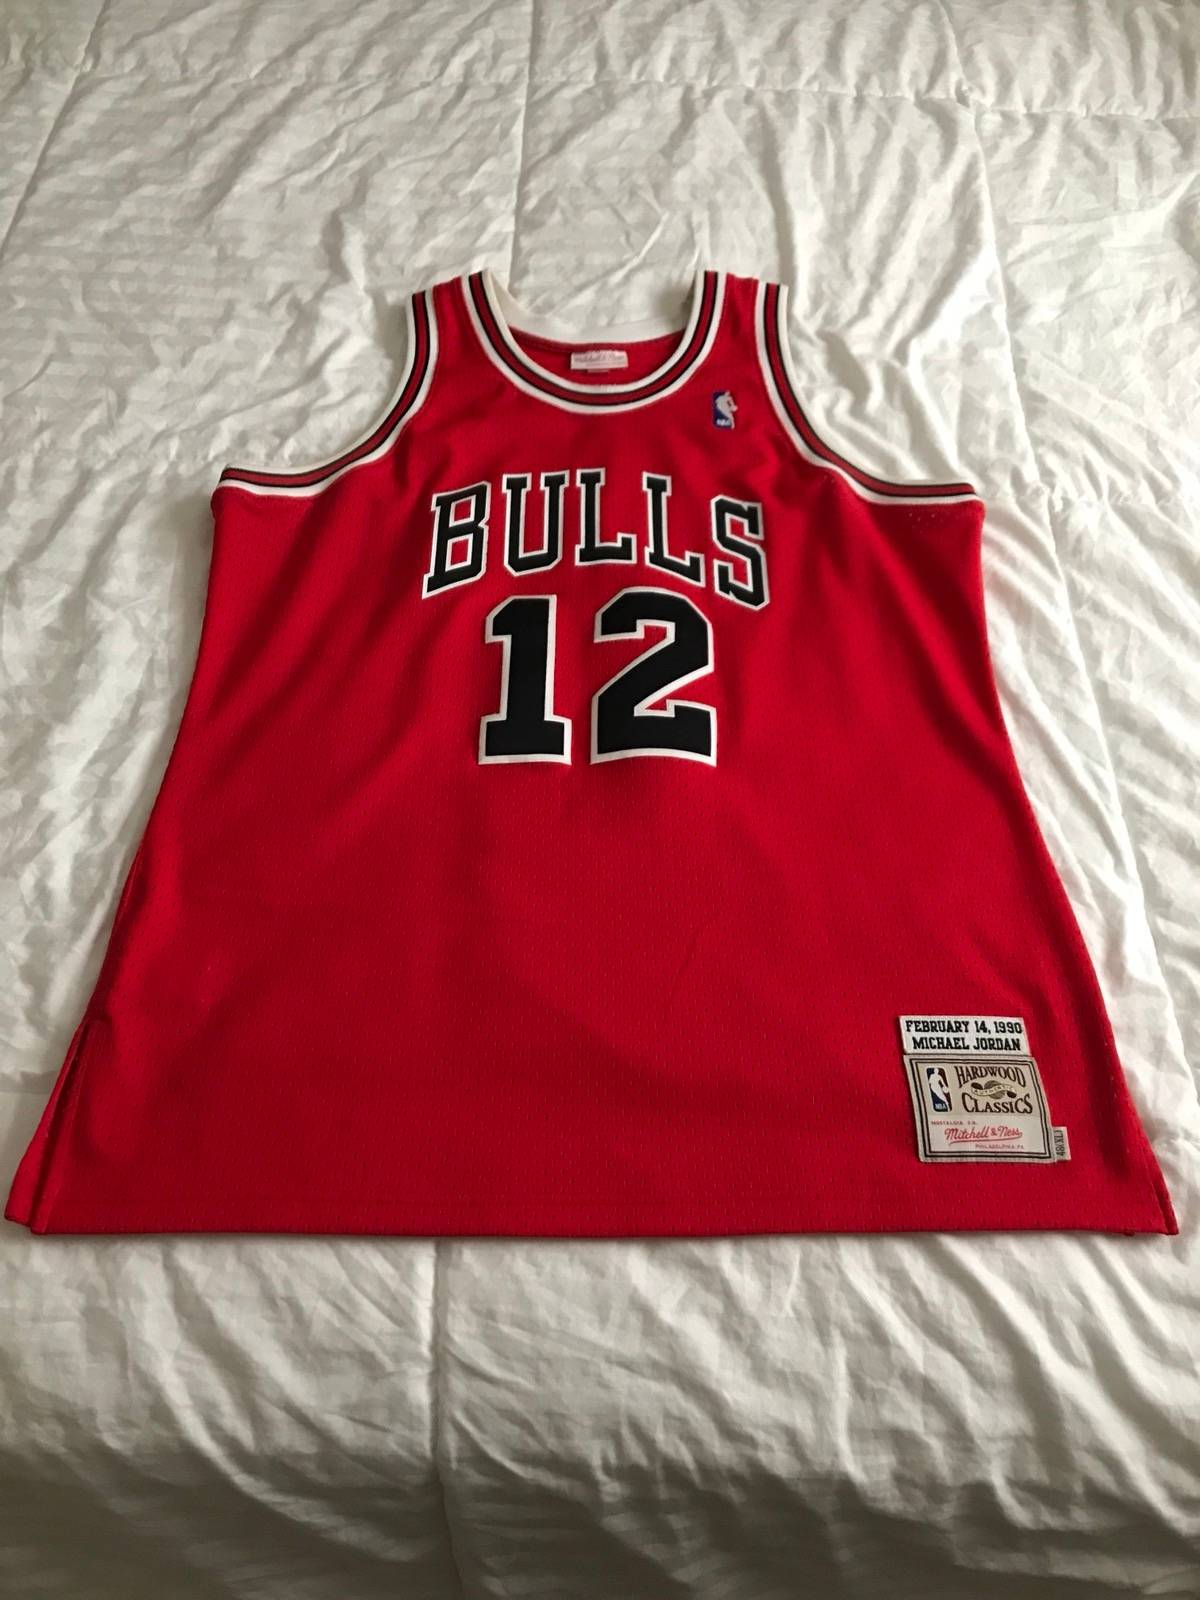 d669ed67578f Mitchell   Ness Men s Chicago Bulls Michael Jordan Mitchell   Ness Red  Hardwood Classics  12 Authentic Jersey Size xl - Jerseys for Sale - Grailed